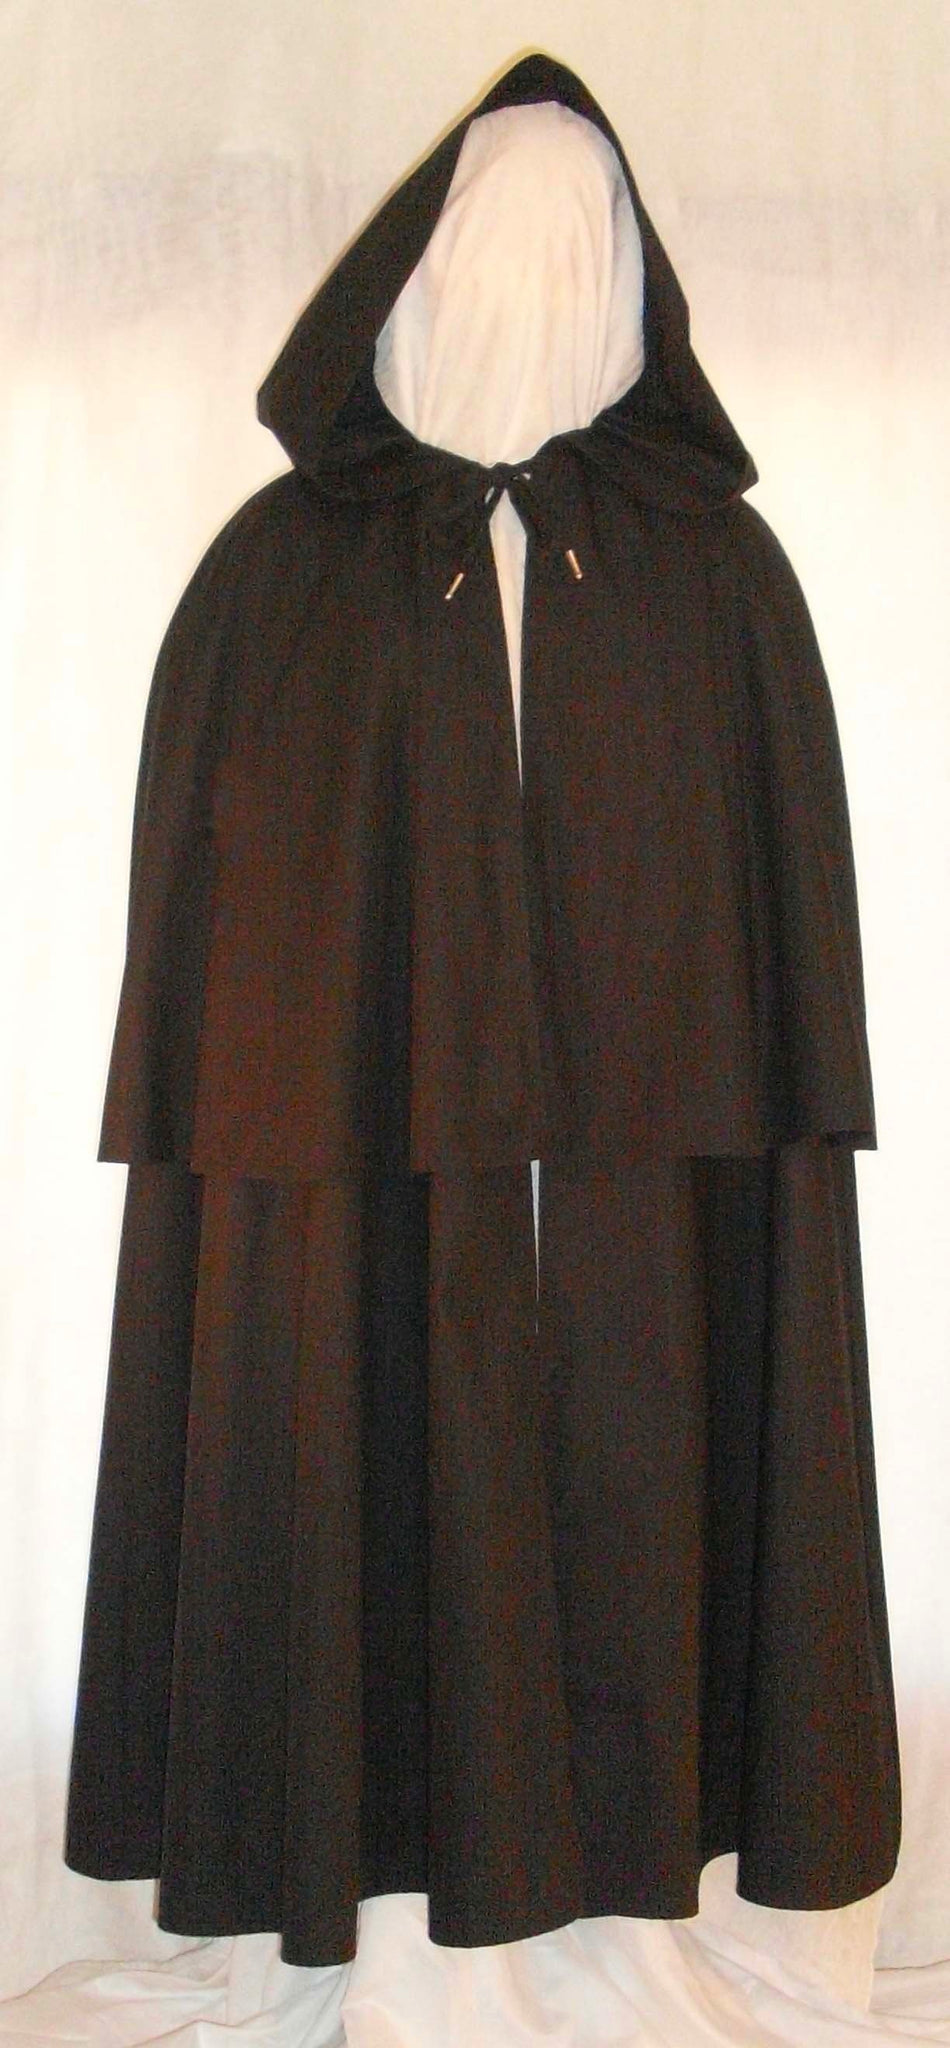 Highwayman Cape by White Pavilion, front view. This double cape is ideal for medieval, Renaissance, colonial, Victorian, Goth and Steampunk costume, and Revolutionary War and French and Indian War reenactors.